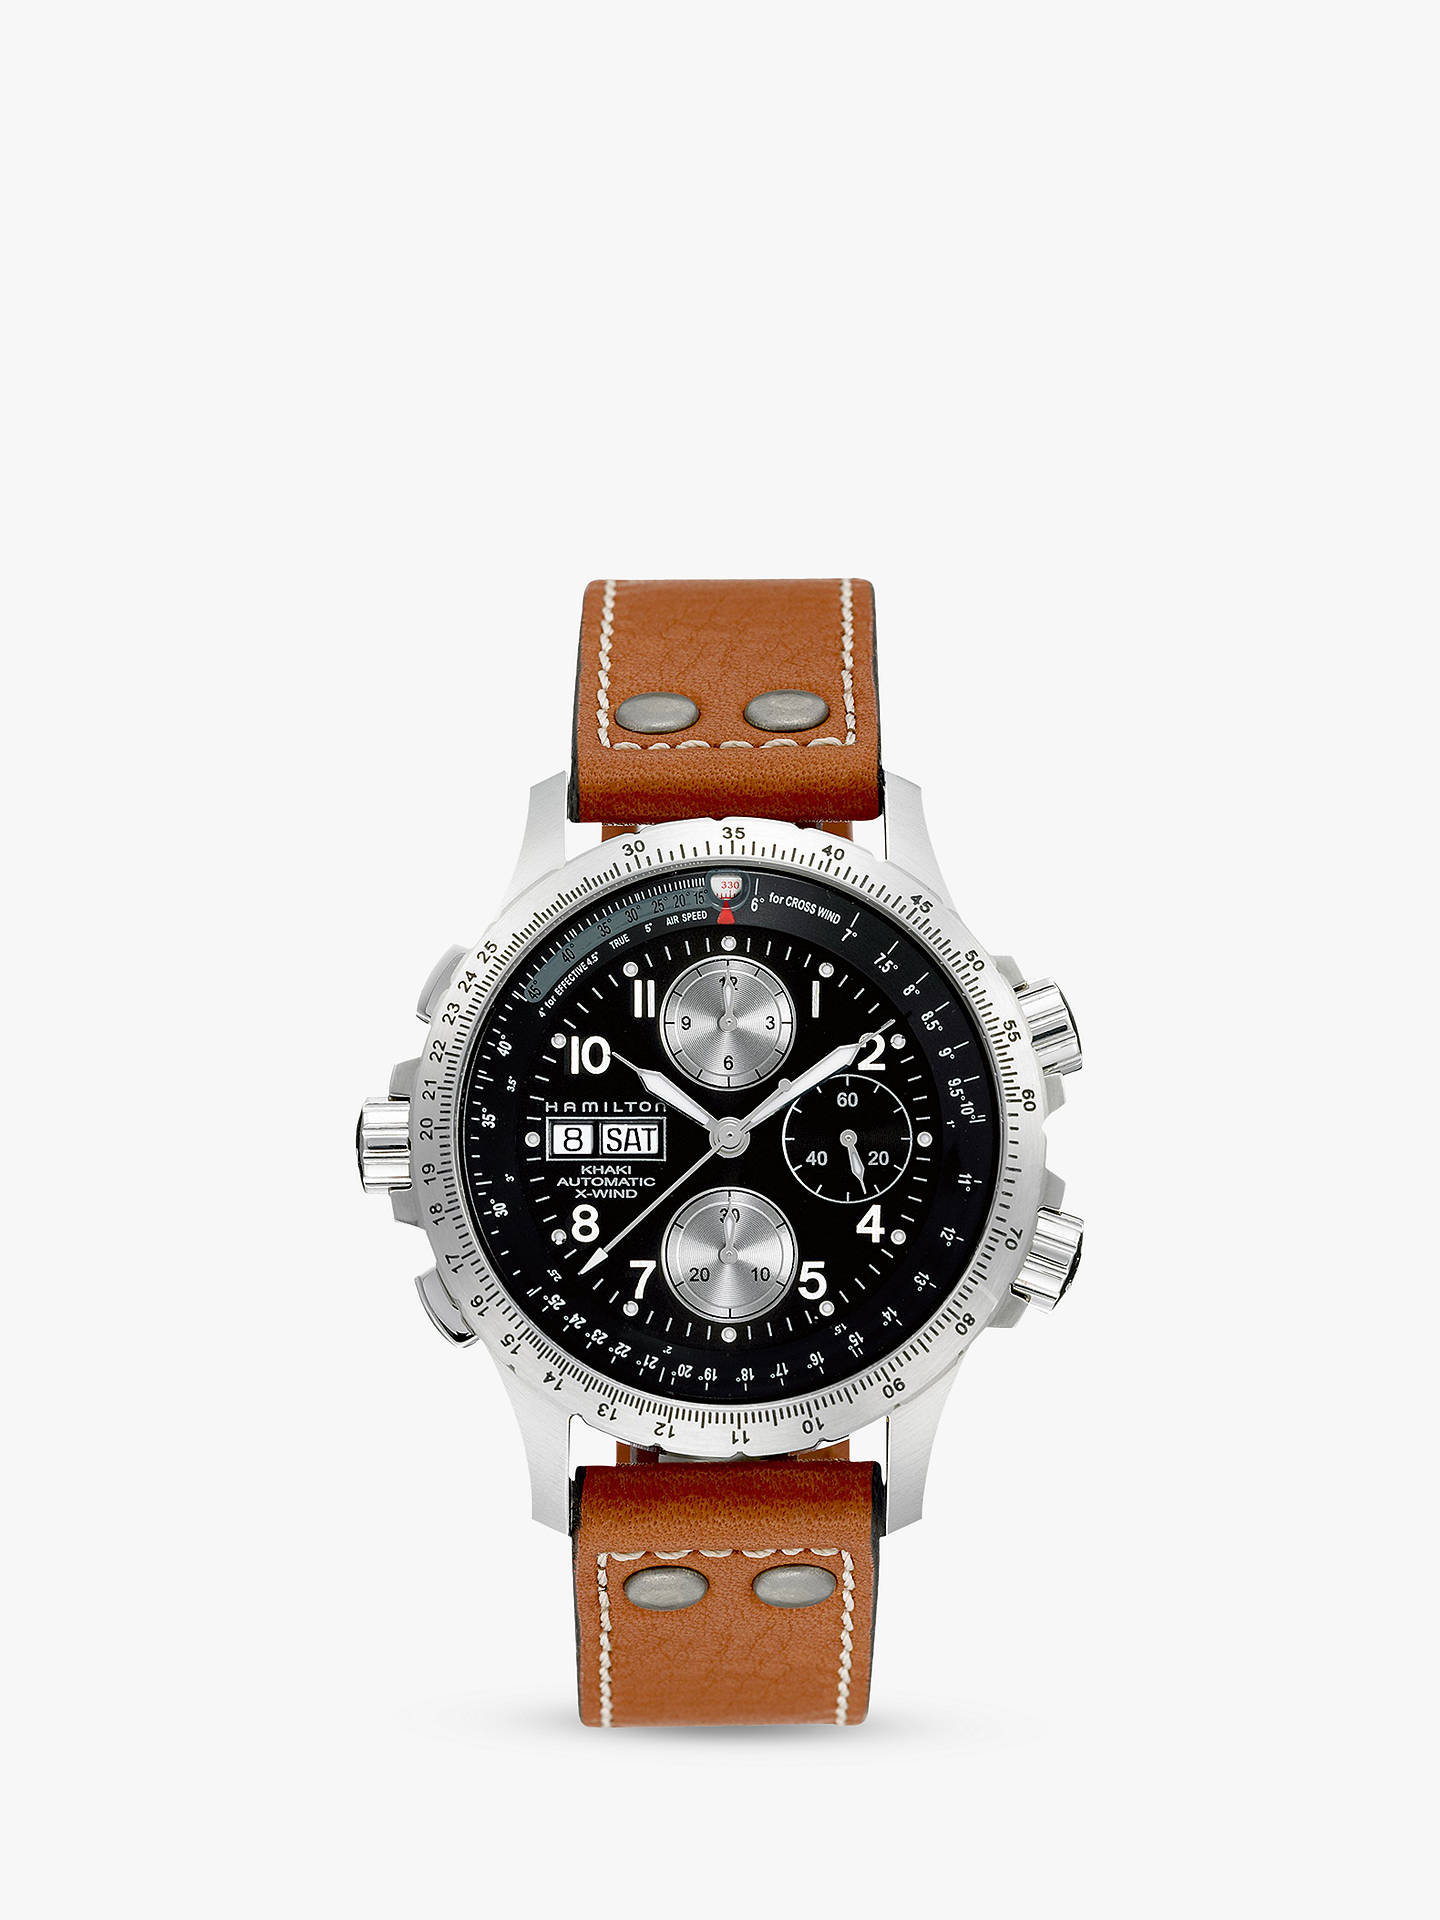 27977291c05 Buy Hamilton H77616533 Men s Khaki X-Wind Day Date Chronograph Leather  Strap Watch